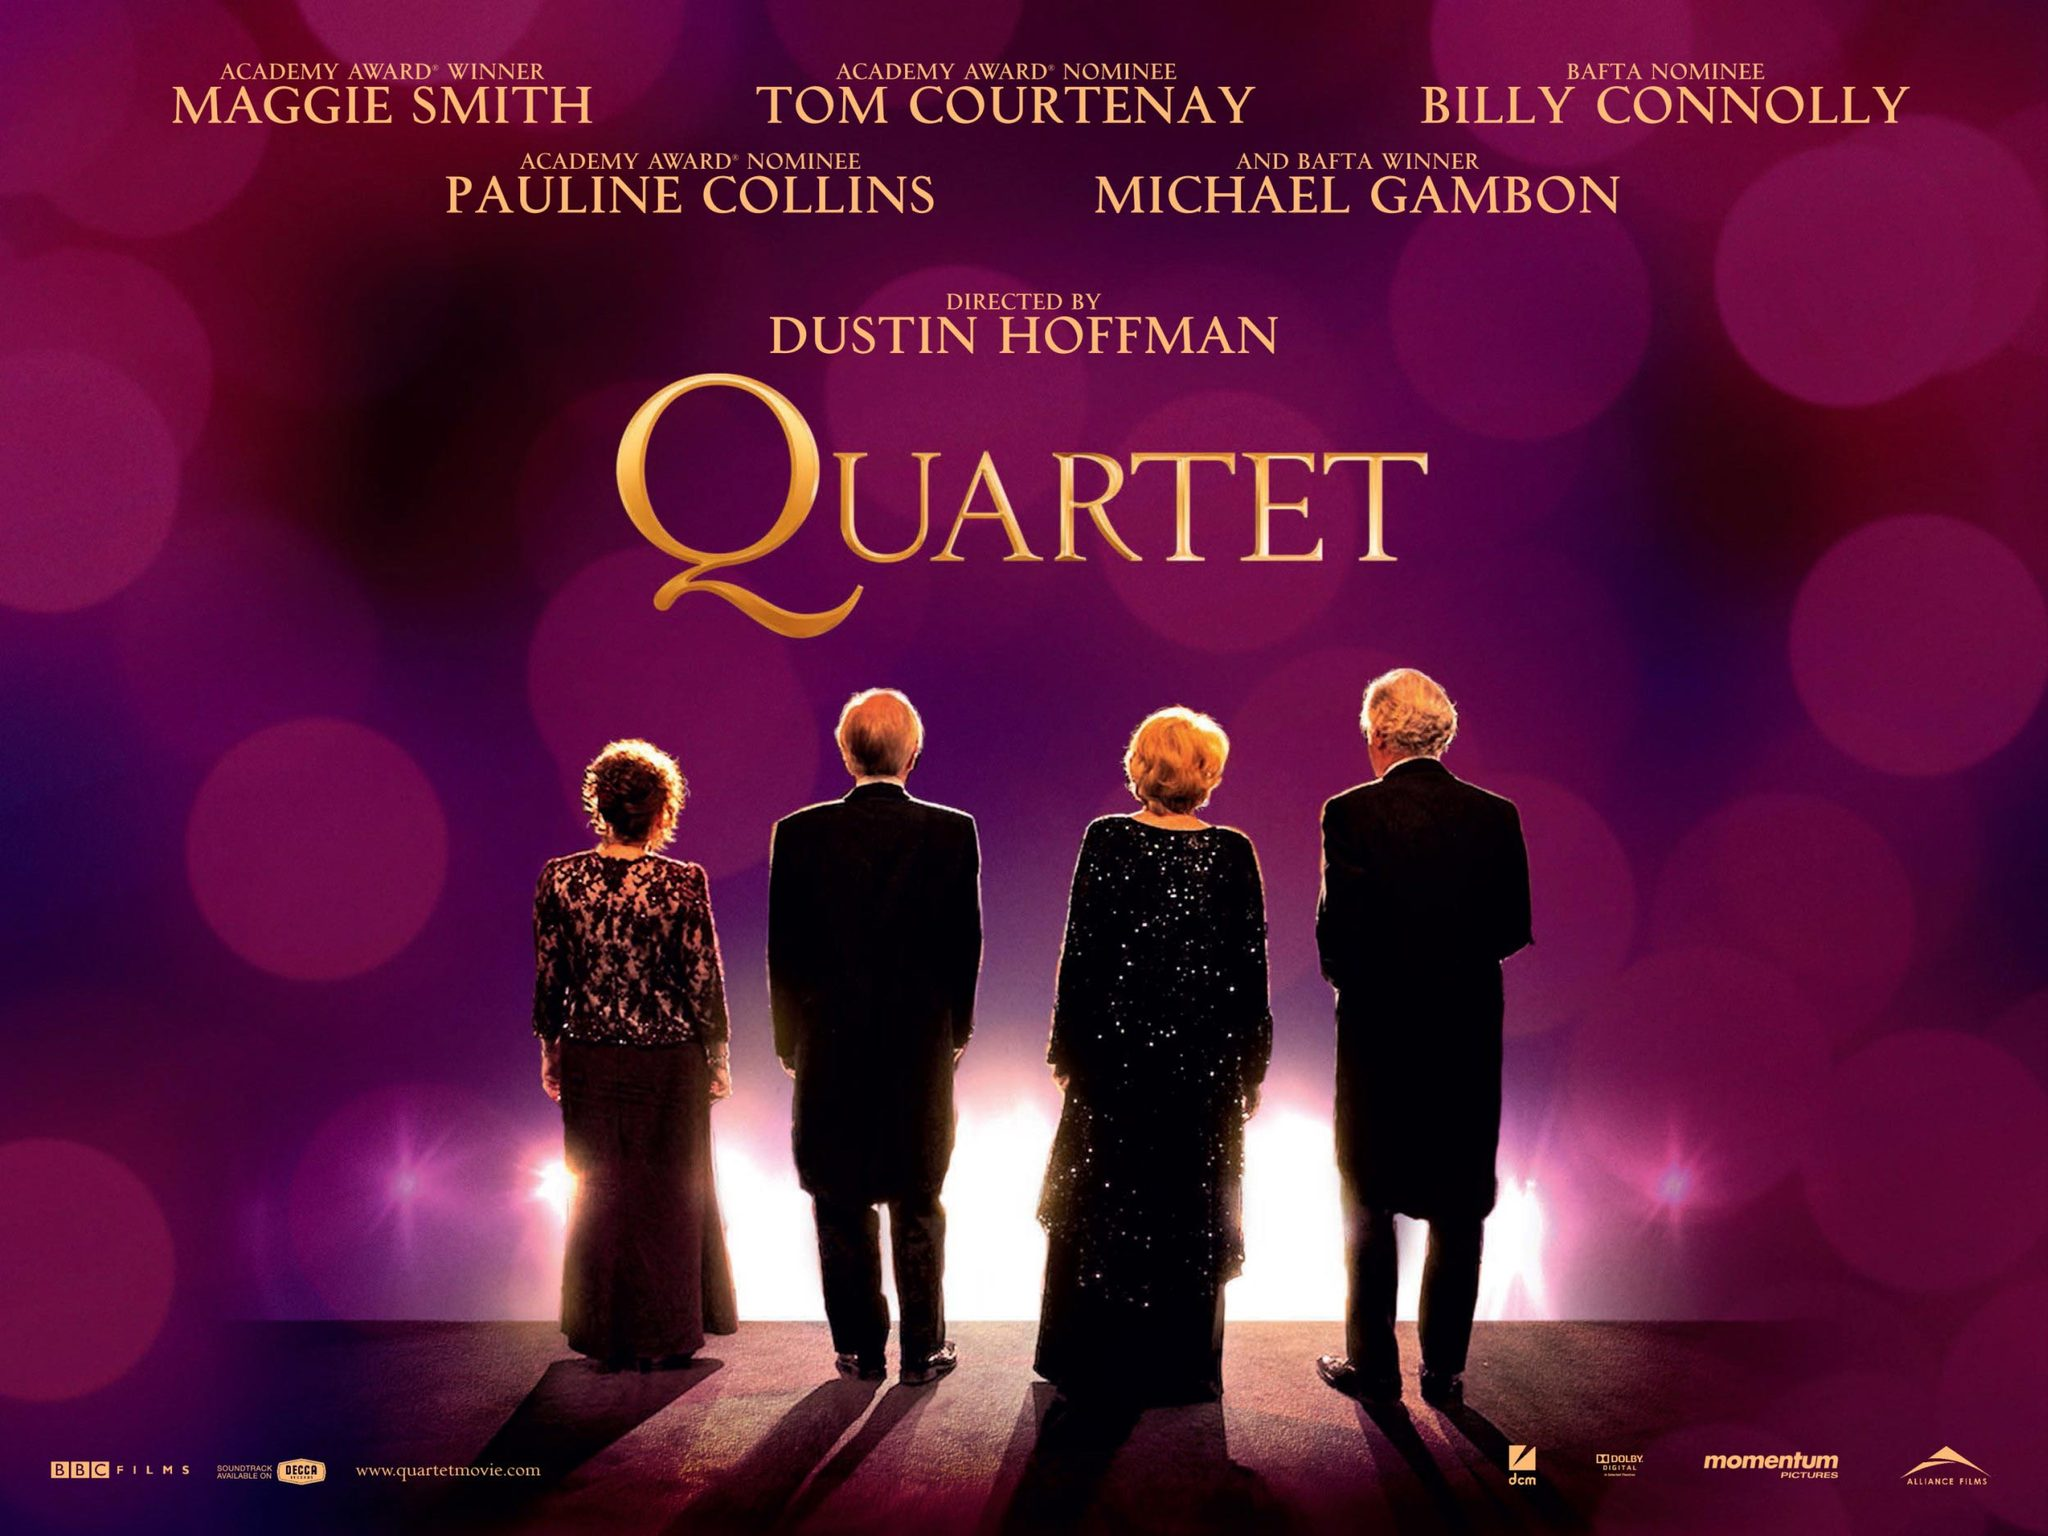 http://www.heyuguys.co.uk/images/2012/11/Quartet-Poster.jpg